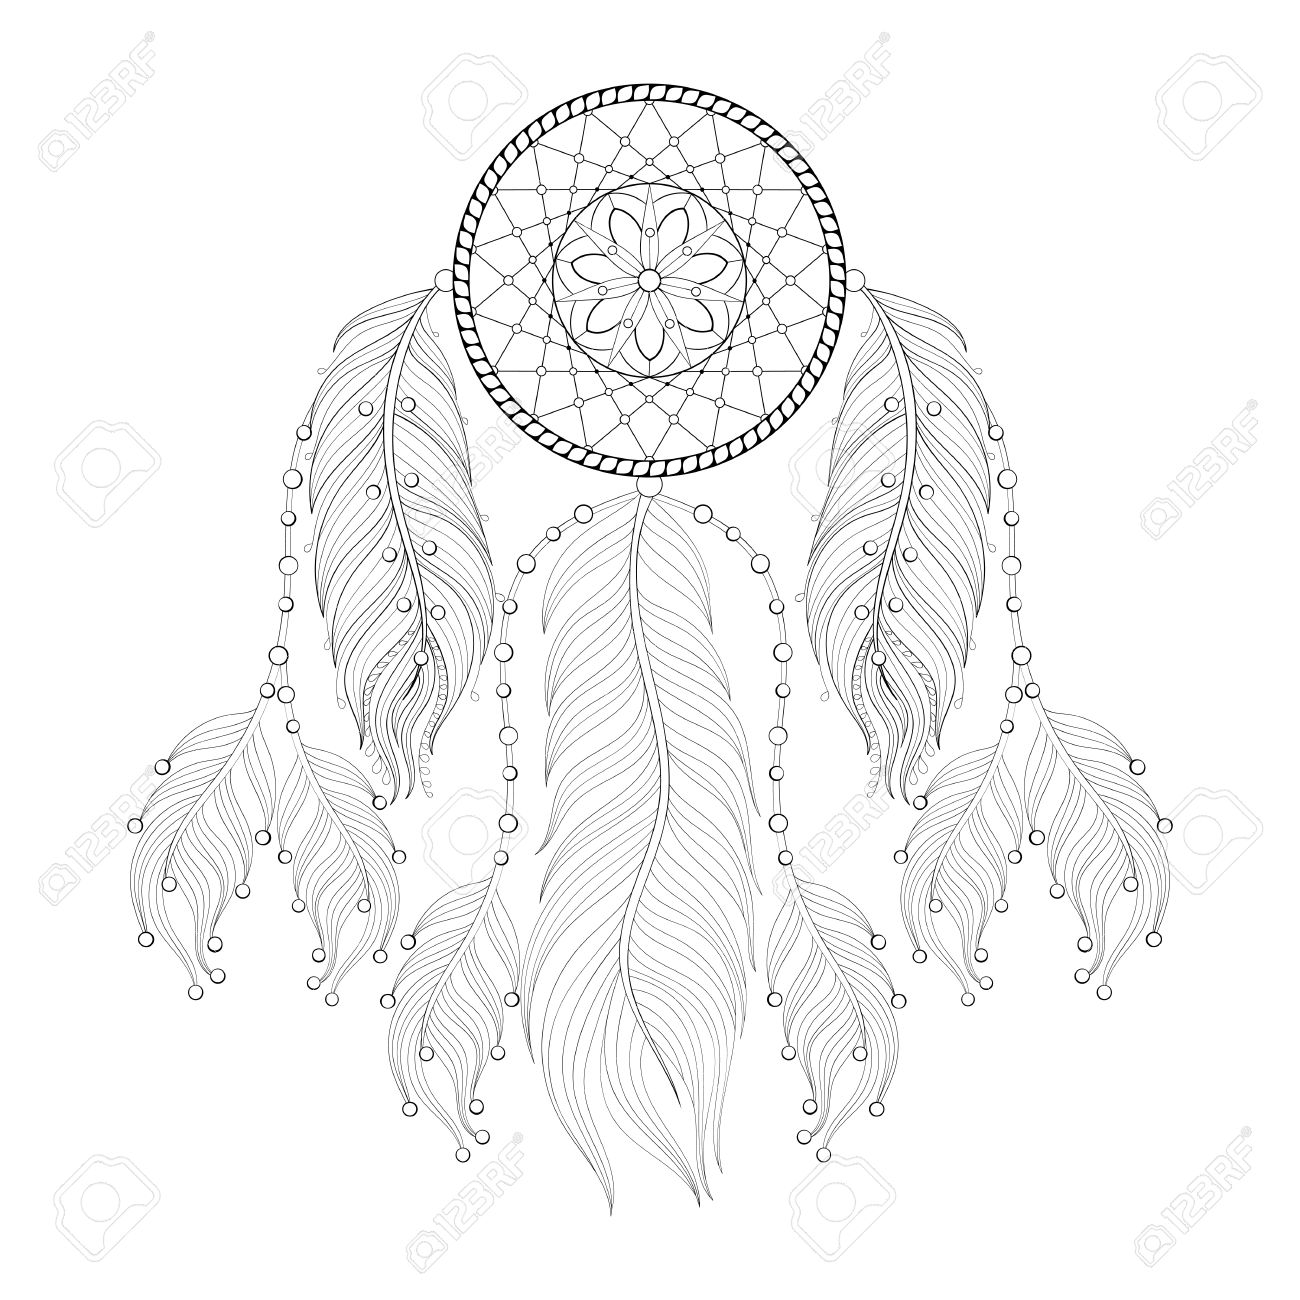 Hand Drawn Dream Catcher With Mehendi Mandala For Adult Coloring Pages Post Card T